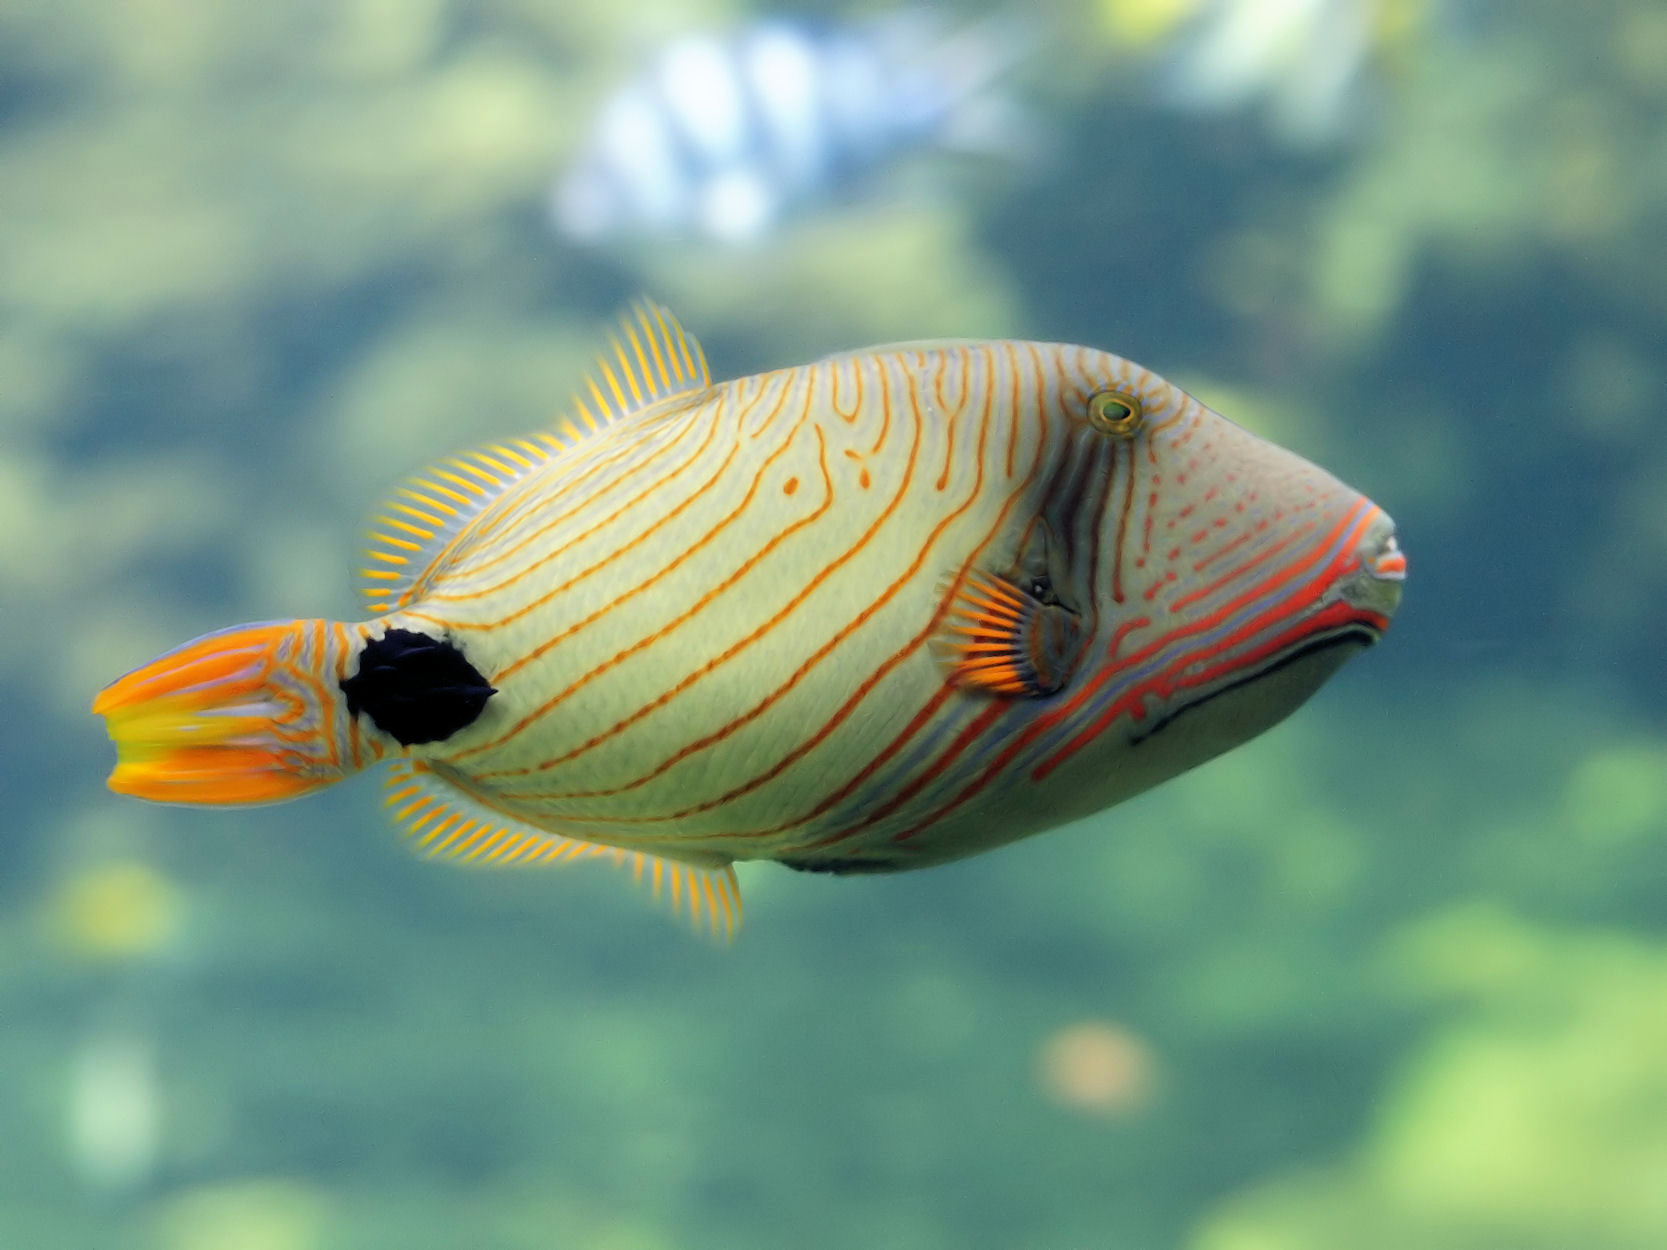 Orangestriped triggerfish wallpaper